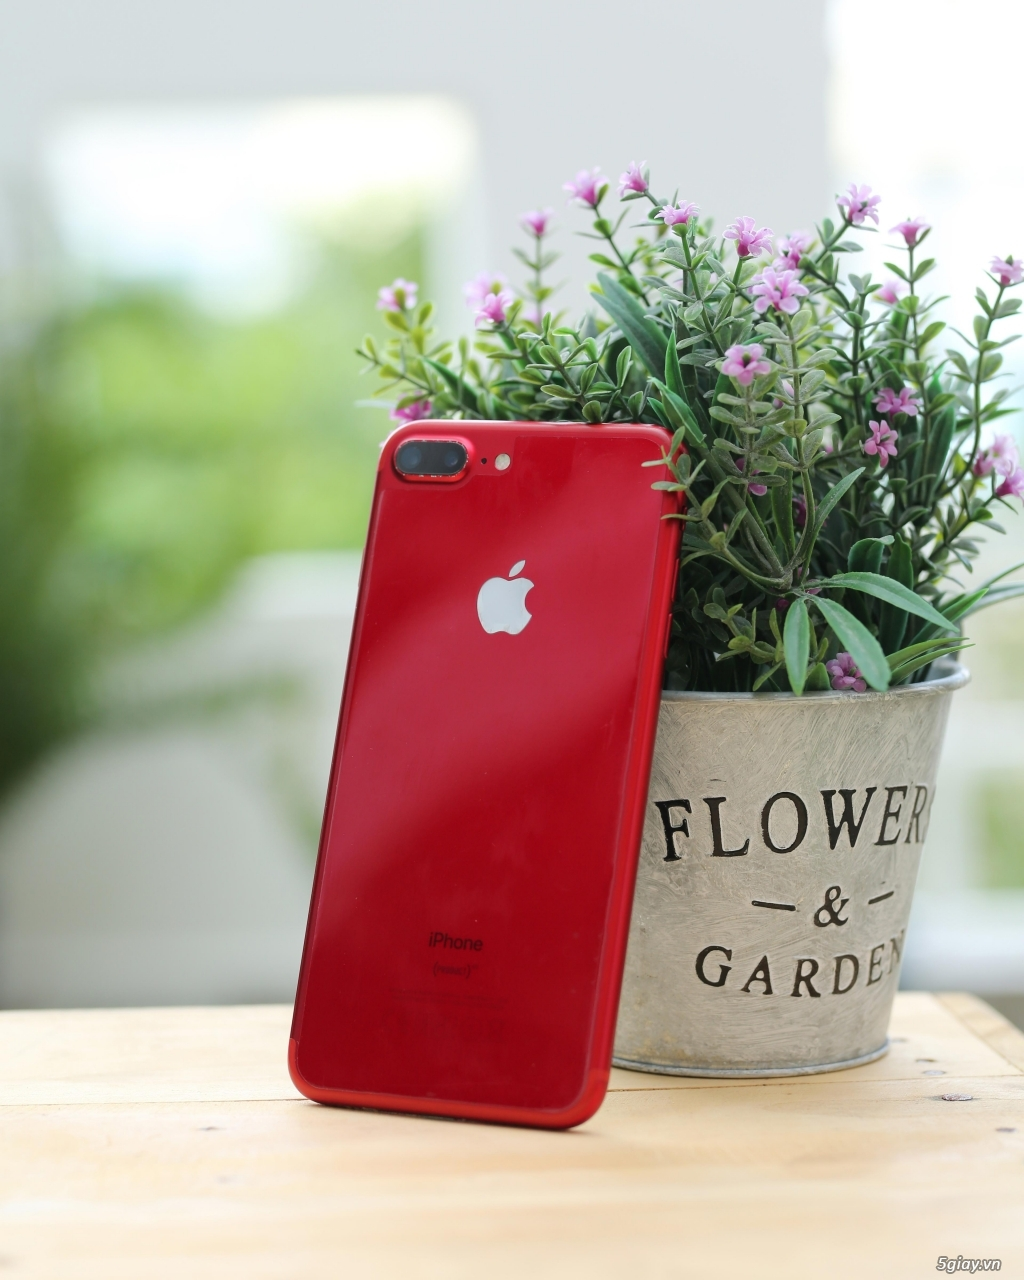 Bán Iphone 7 Plus Product Red 128Gb (đỏ)